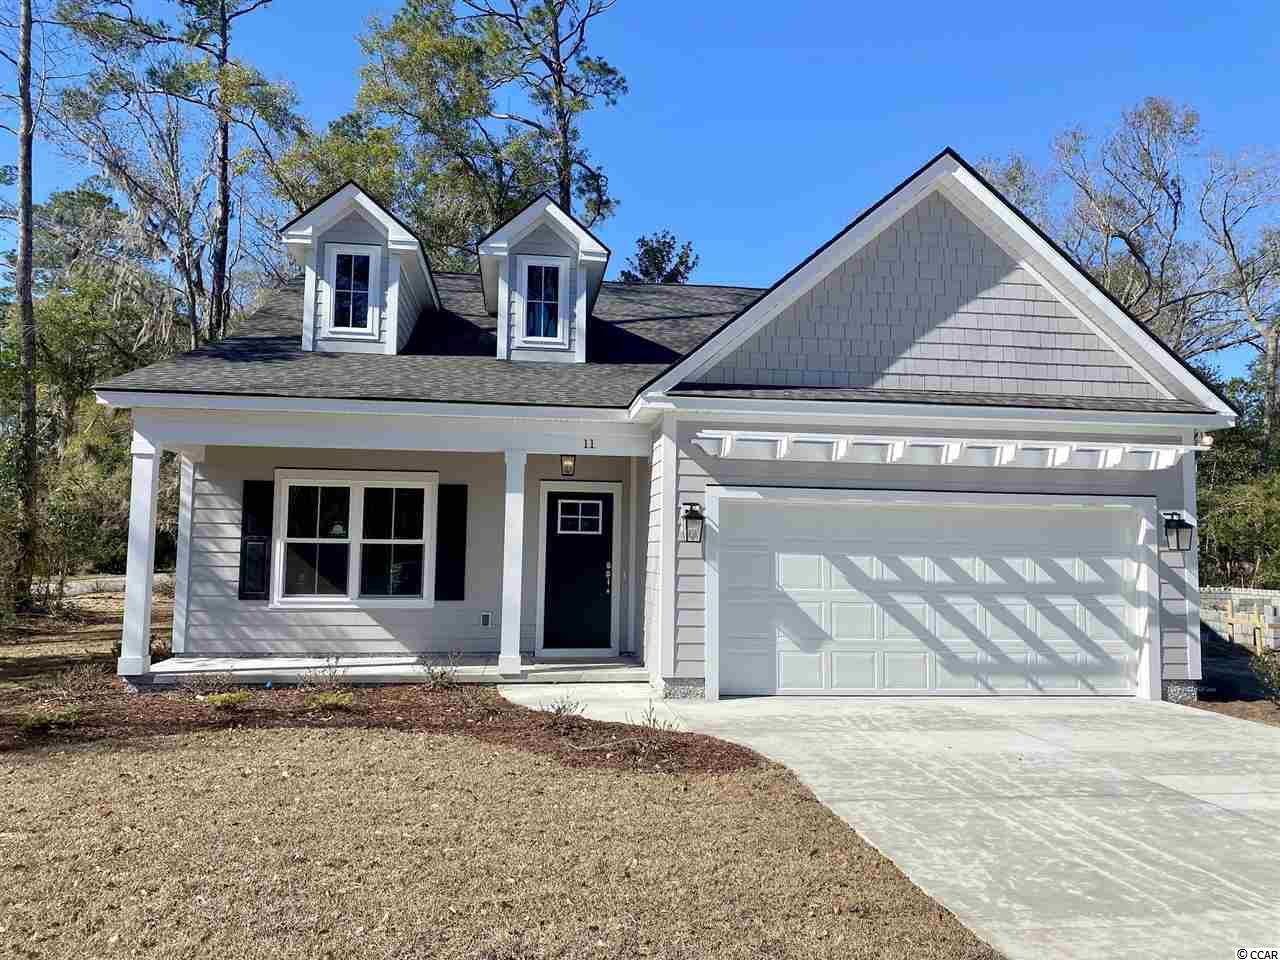 "The Indigo Plan- Located in ""Northwoods""  in Litchfield Plantation- This Beautiful floor plan boasts 9' Ceilings in the Main Living areas with crown molding, Open Kitchen/living layout with Granite Countertops, tile back splash, Upgraded Stainless steel appliances, and large Pantry. The Pinckney also offers a separate formal dining and breakfast nook.  The Master bathroom offers a separate Tub and Tile Walk in Shower, Large Walk in Closet and his and hers sinks with Granite Tops. At the rear of the home you will find a large covered porch with pine ceilings as well as a seperate grilling patio.  All of the homes in Northwoods will impress you with finish and upgrades as well as the quality of construction. Litchfield Plantation is unmatched in our area for its historic beauty. Enter the Avenue of Oaks, and you will immediately feel swept back in time. Northwoods is a brand new neighborhood located within this private and gated community that offers all of the amenities that Litchfield Plantation includes. This is a rare opportunity to own a home in truly exquisite community in Pawleys Island."